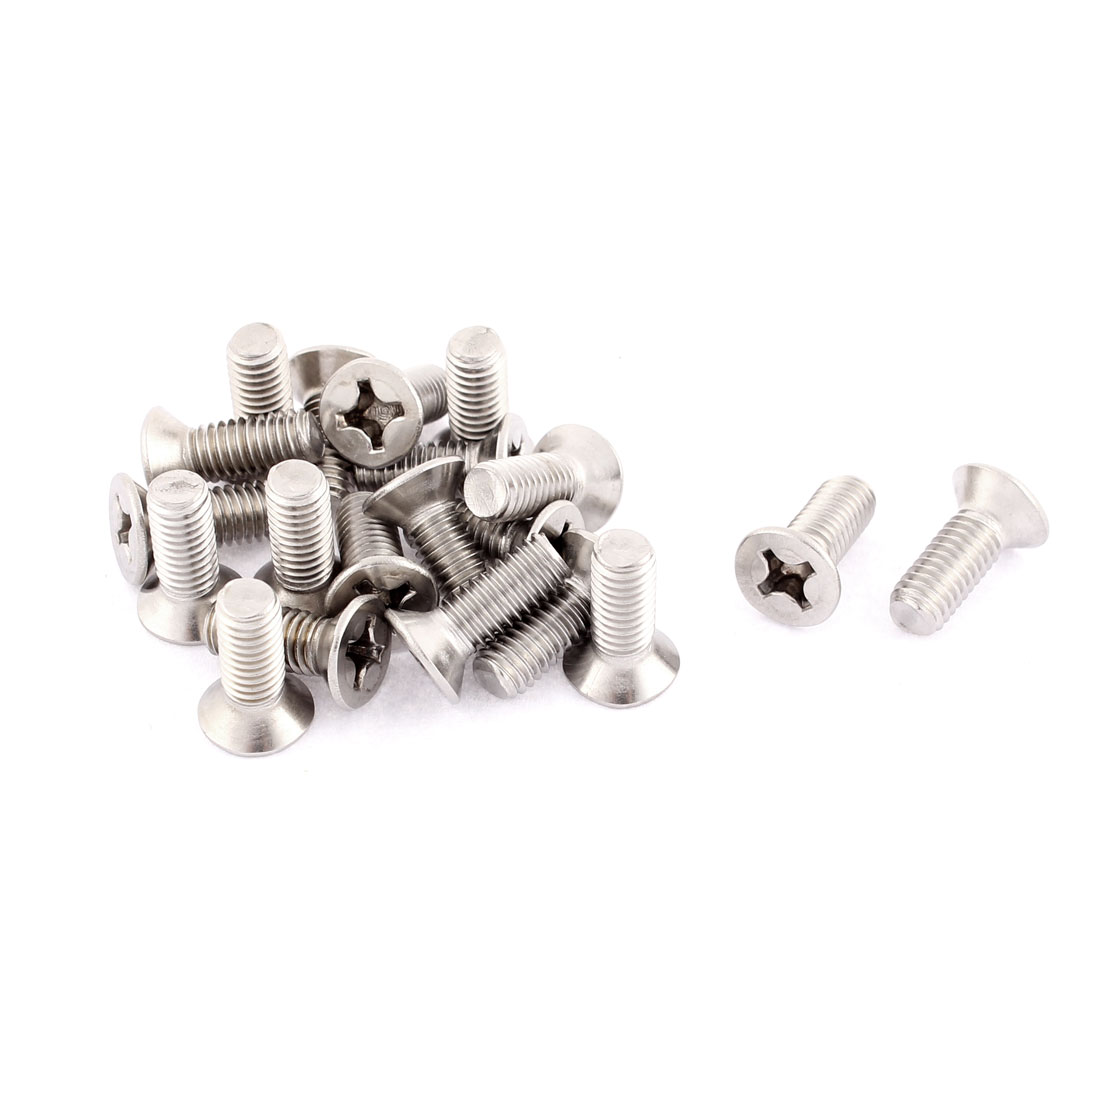 M6 x 16mm Phillips Flat Head Stainless Steel Countersunk Bolts Screws 20pcs